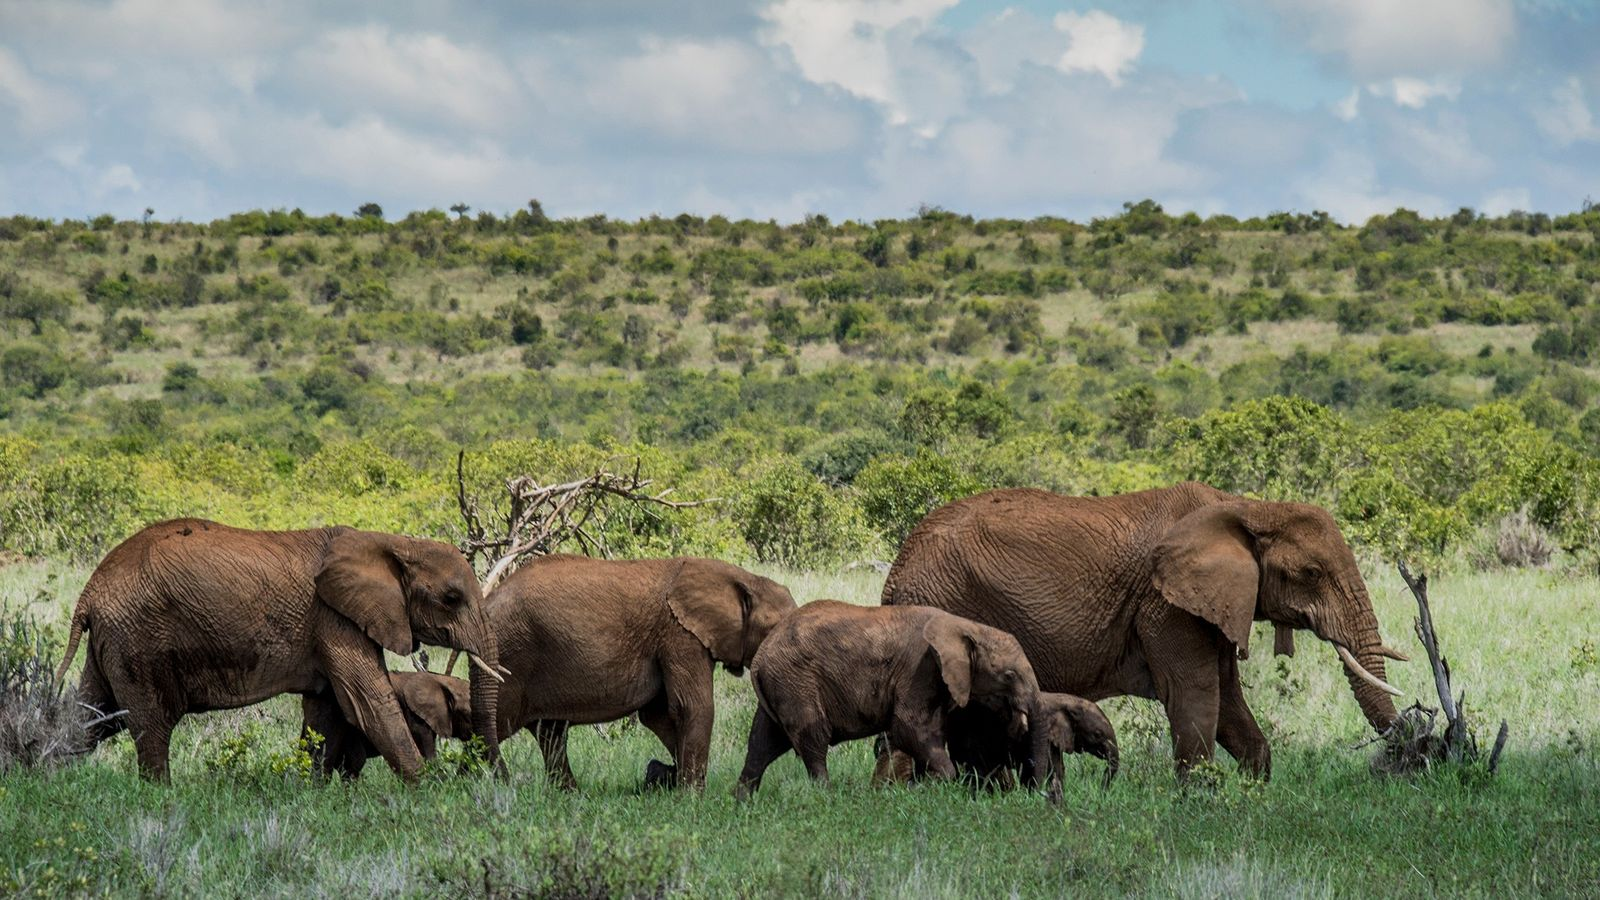 Elephants are a draw for tourists visiting the safari camp at Loisaba Conservancy, a protected area ...